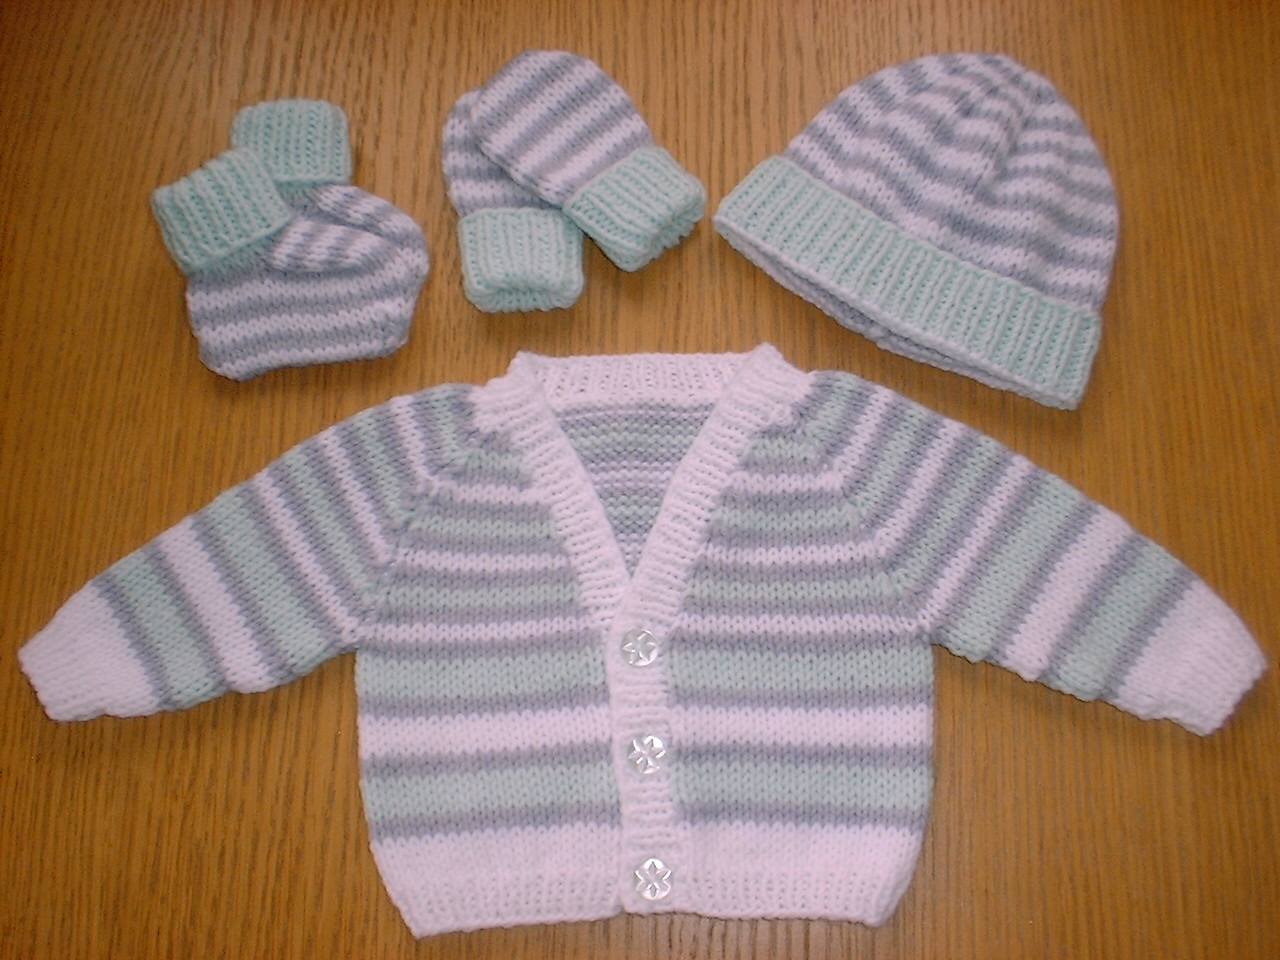 Knitting Patterns For Babies To Download : Angela Turner Designs